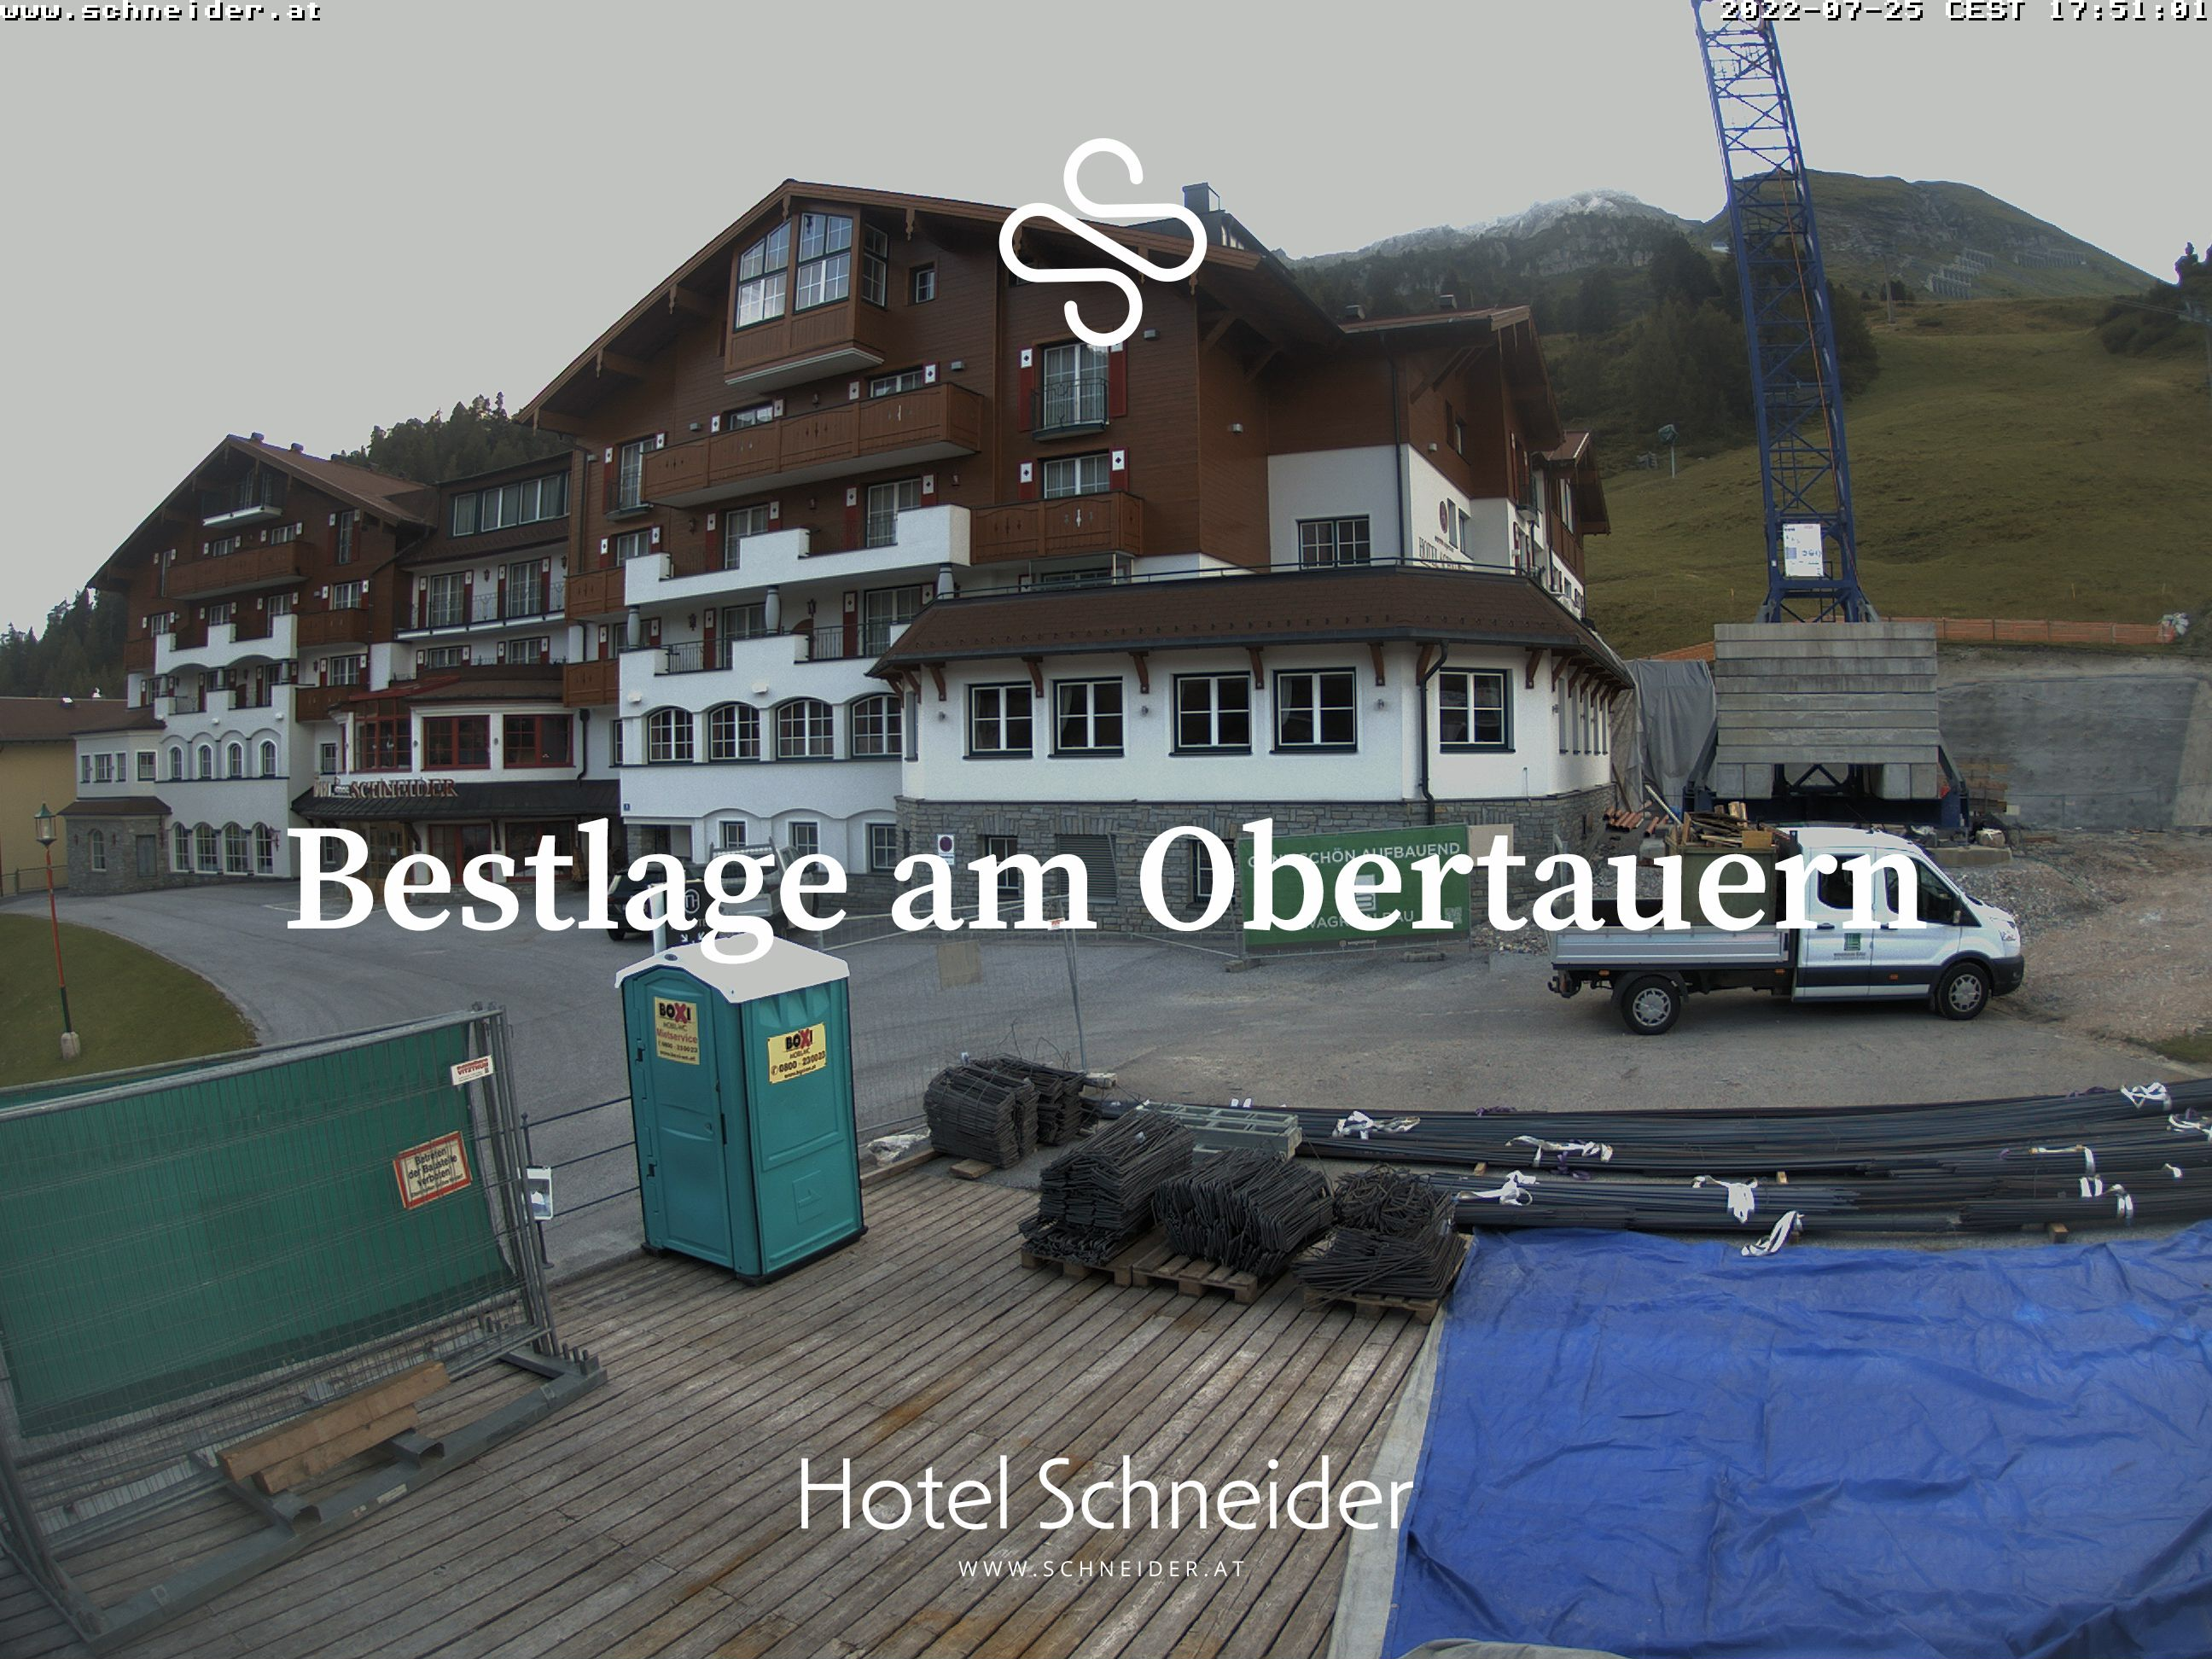 https://www.schneider.at/wp-content/uploads/webcam/obertauern-hotel-schneider.jpg